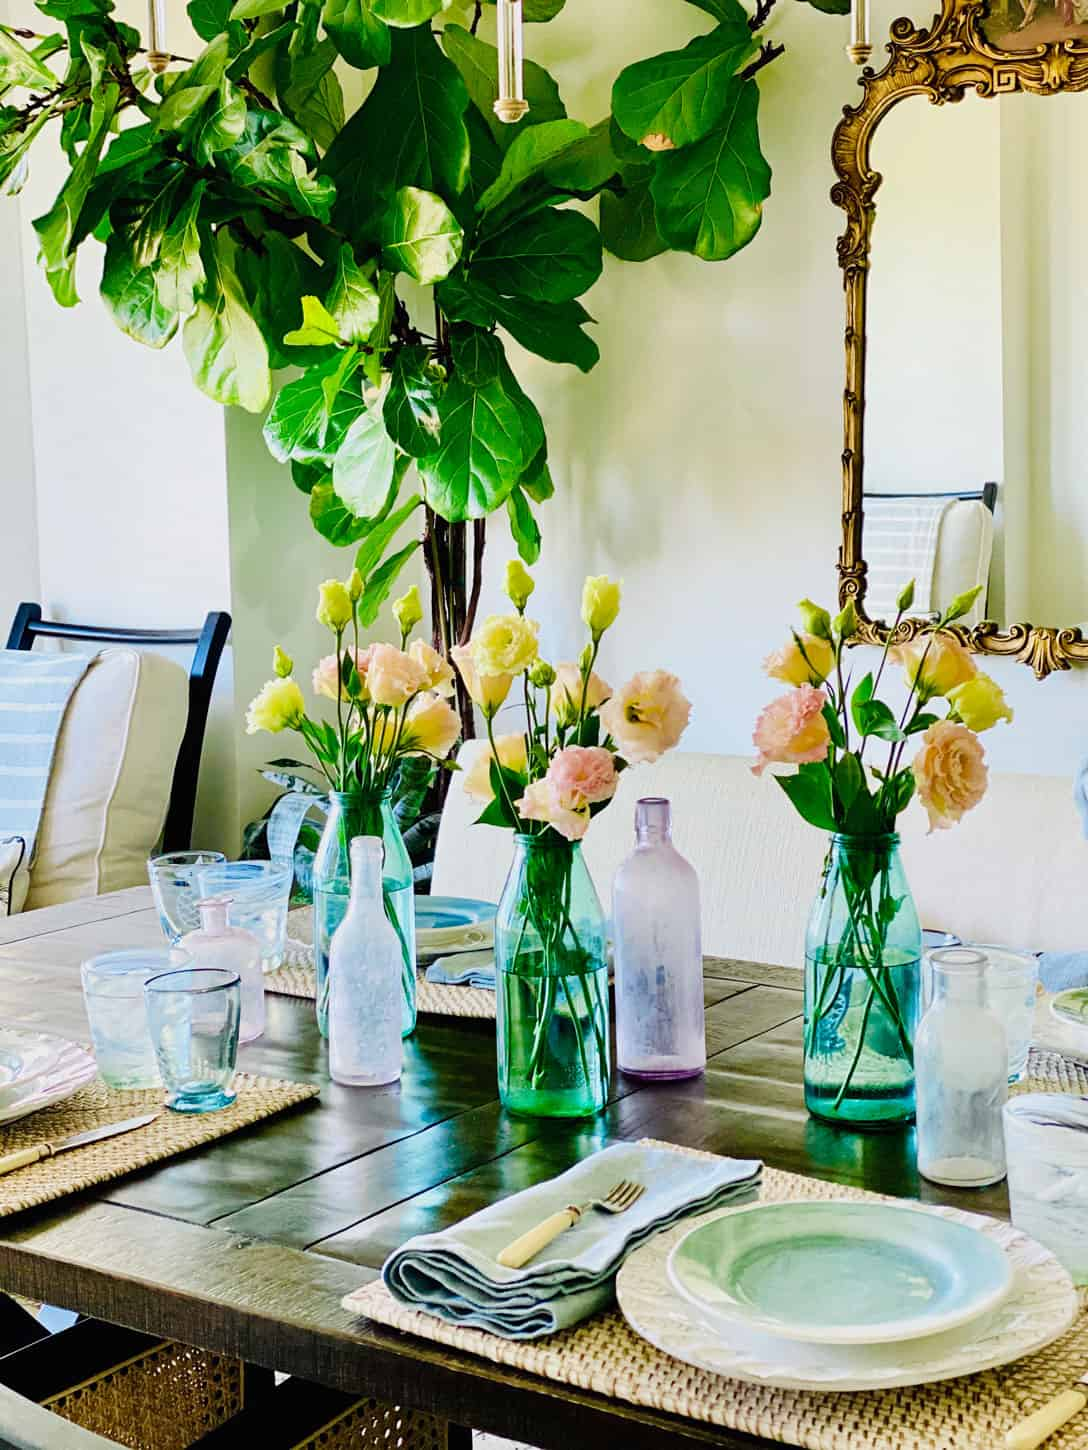 Mary Ann Pickett's table setting with bottles